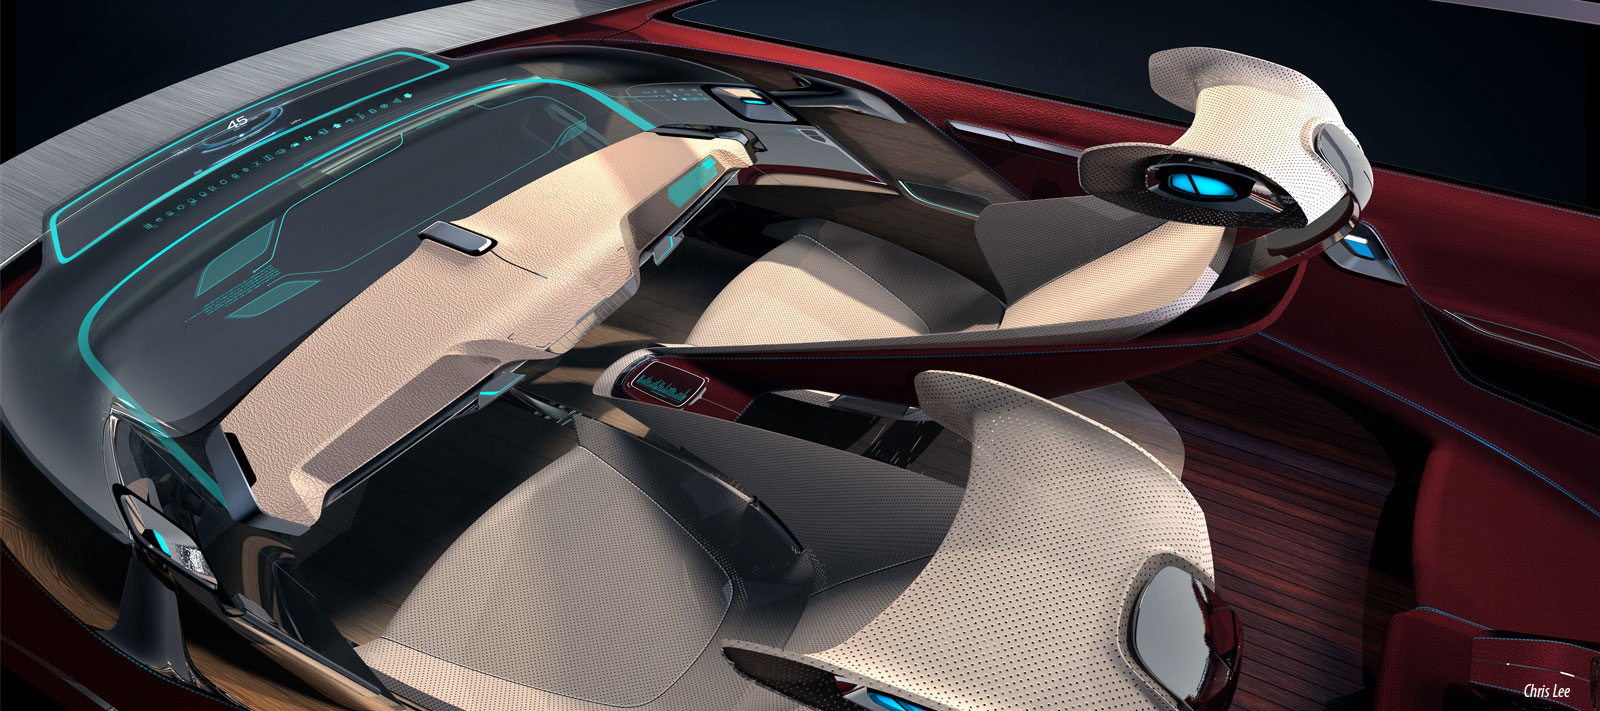 Bmw I7 Concept Interior Design Sketch Car Body Design